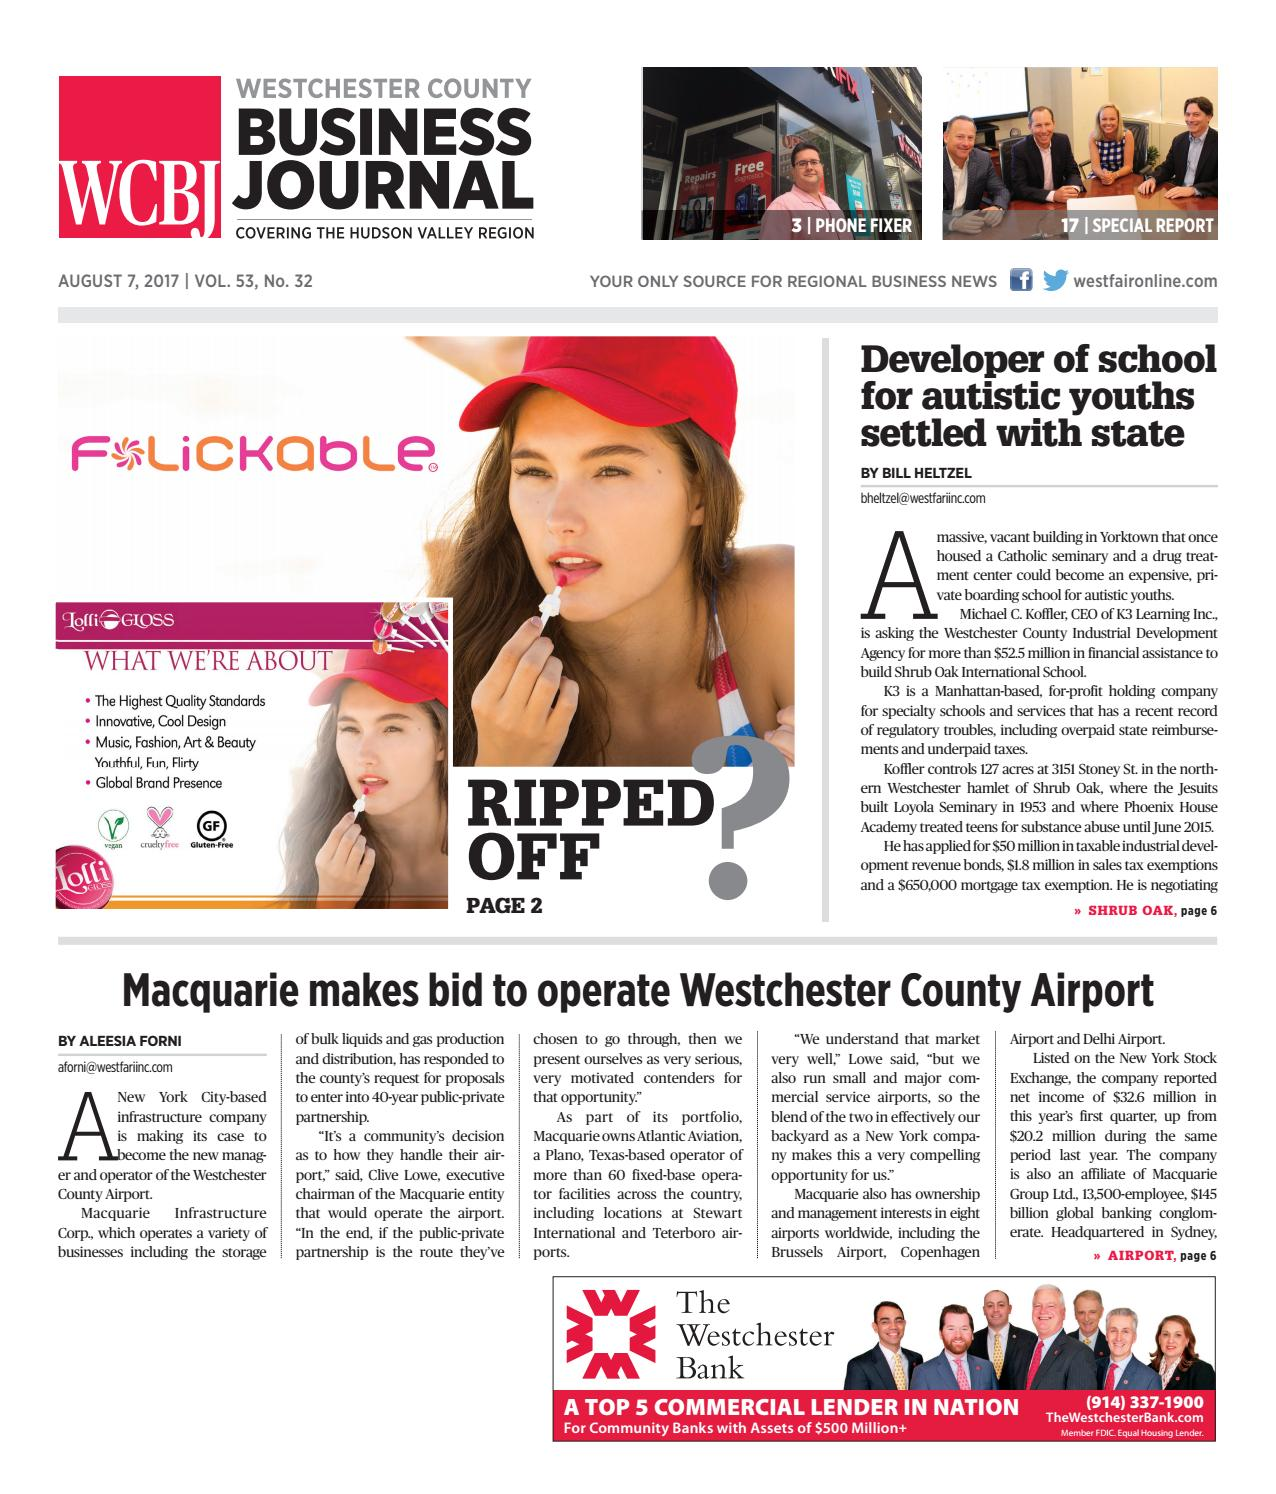 Westchester County Business Journal 080717 by Wag Magazine - issuu